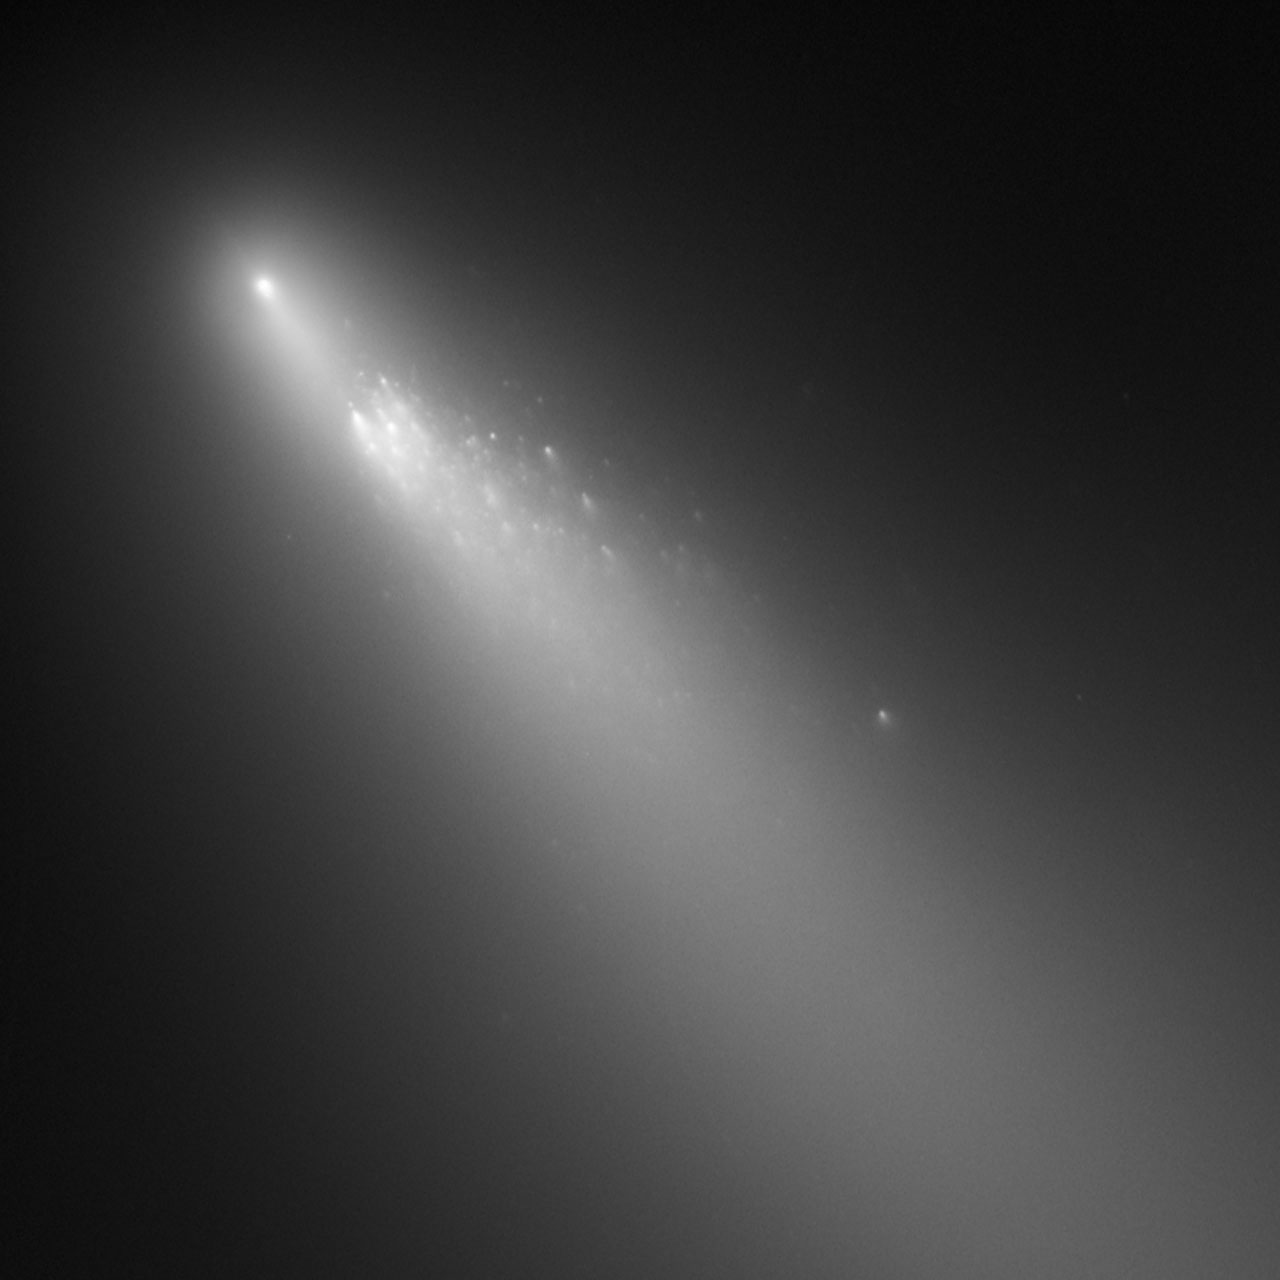 Disintegration of a comet in our Solar System caught by the eye of the Hubble Space Telescope. This comet, named 73P/Schwassmann-Wachmann 3, fragmented off many pieces as it plummeted toward the Sun in 2006. As the radiation from a star heats a comet, the ices that hold it together sublimate, releasing large chunks of rock into space. Something similar may be happening near KIC 8462852.